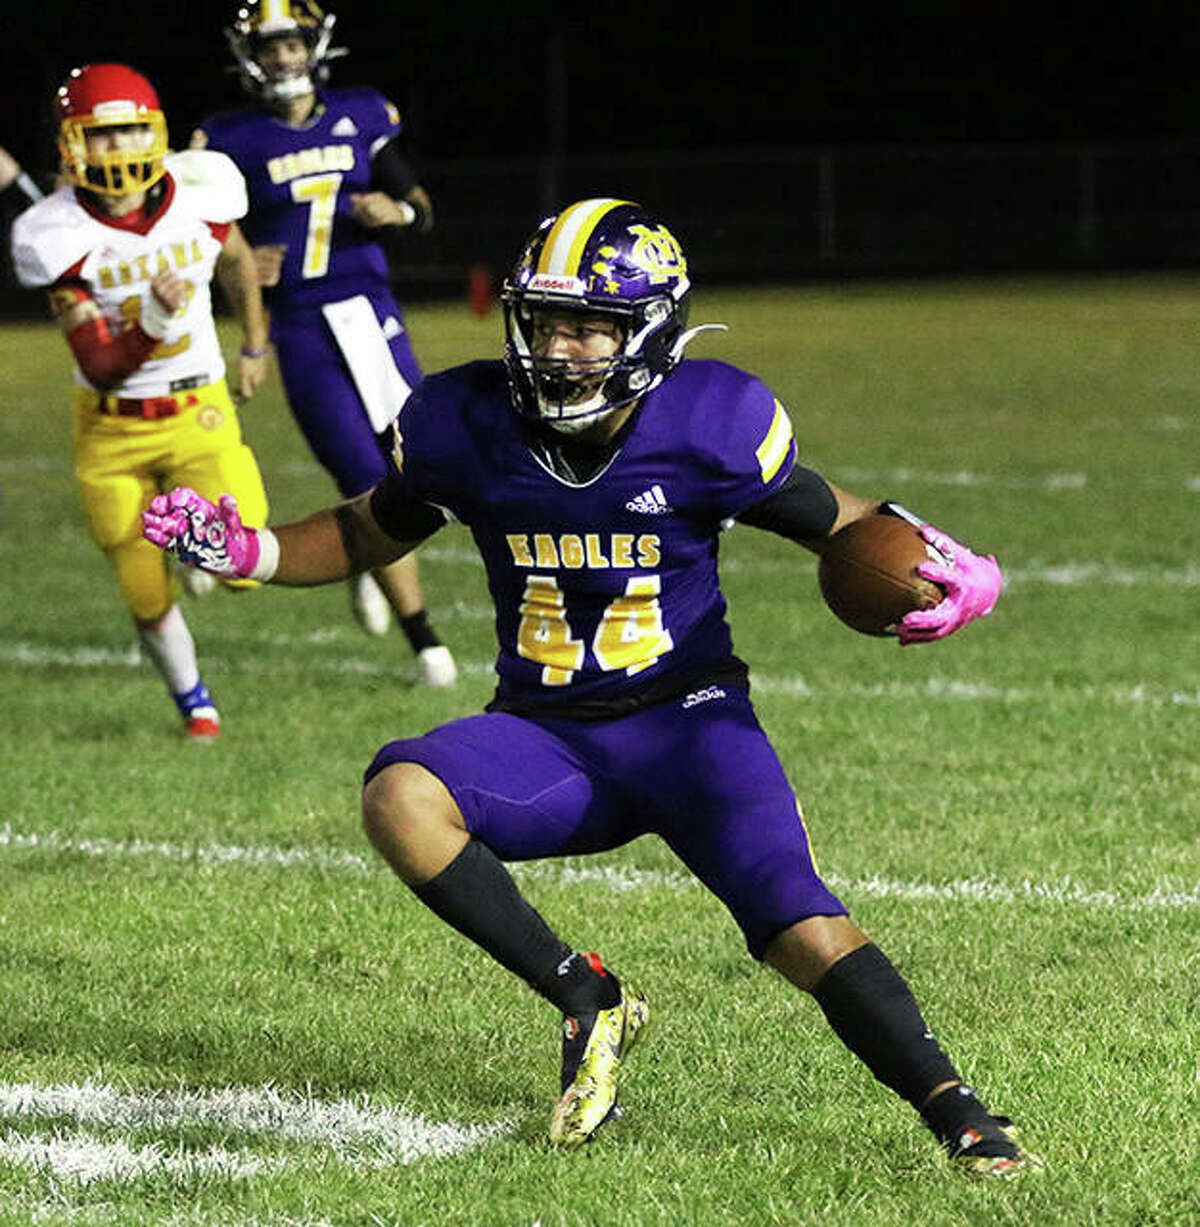 CM's Miguel Gonzalex makes a cut in a game against Roxana on Sept. 10 at Hauser Field in Bethalto. CM plays a Mississippi Valley Conference game at Waterloo on Friday night.